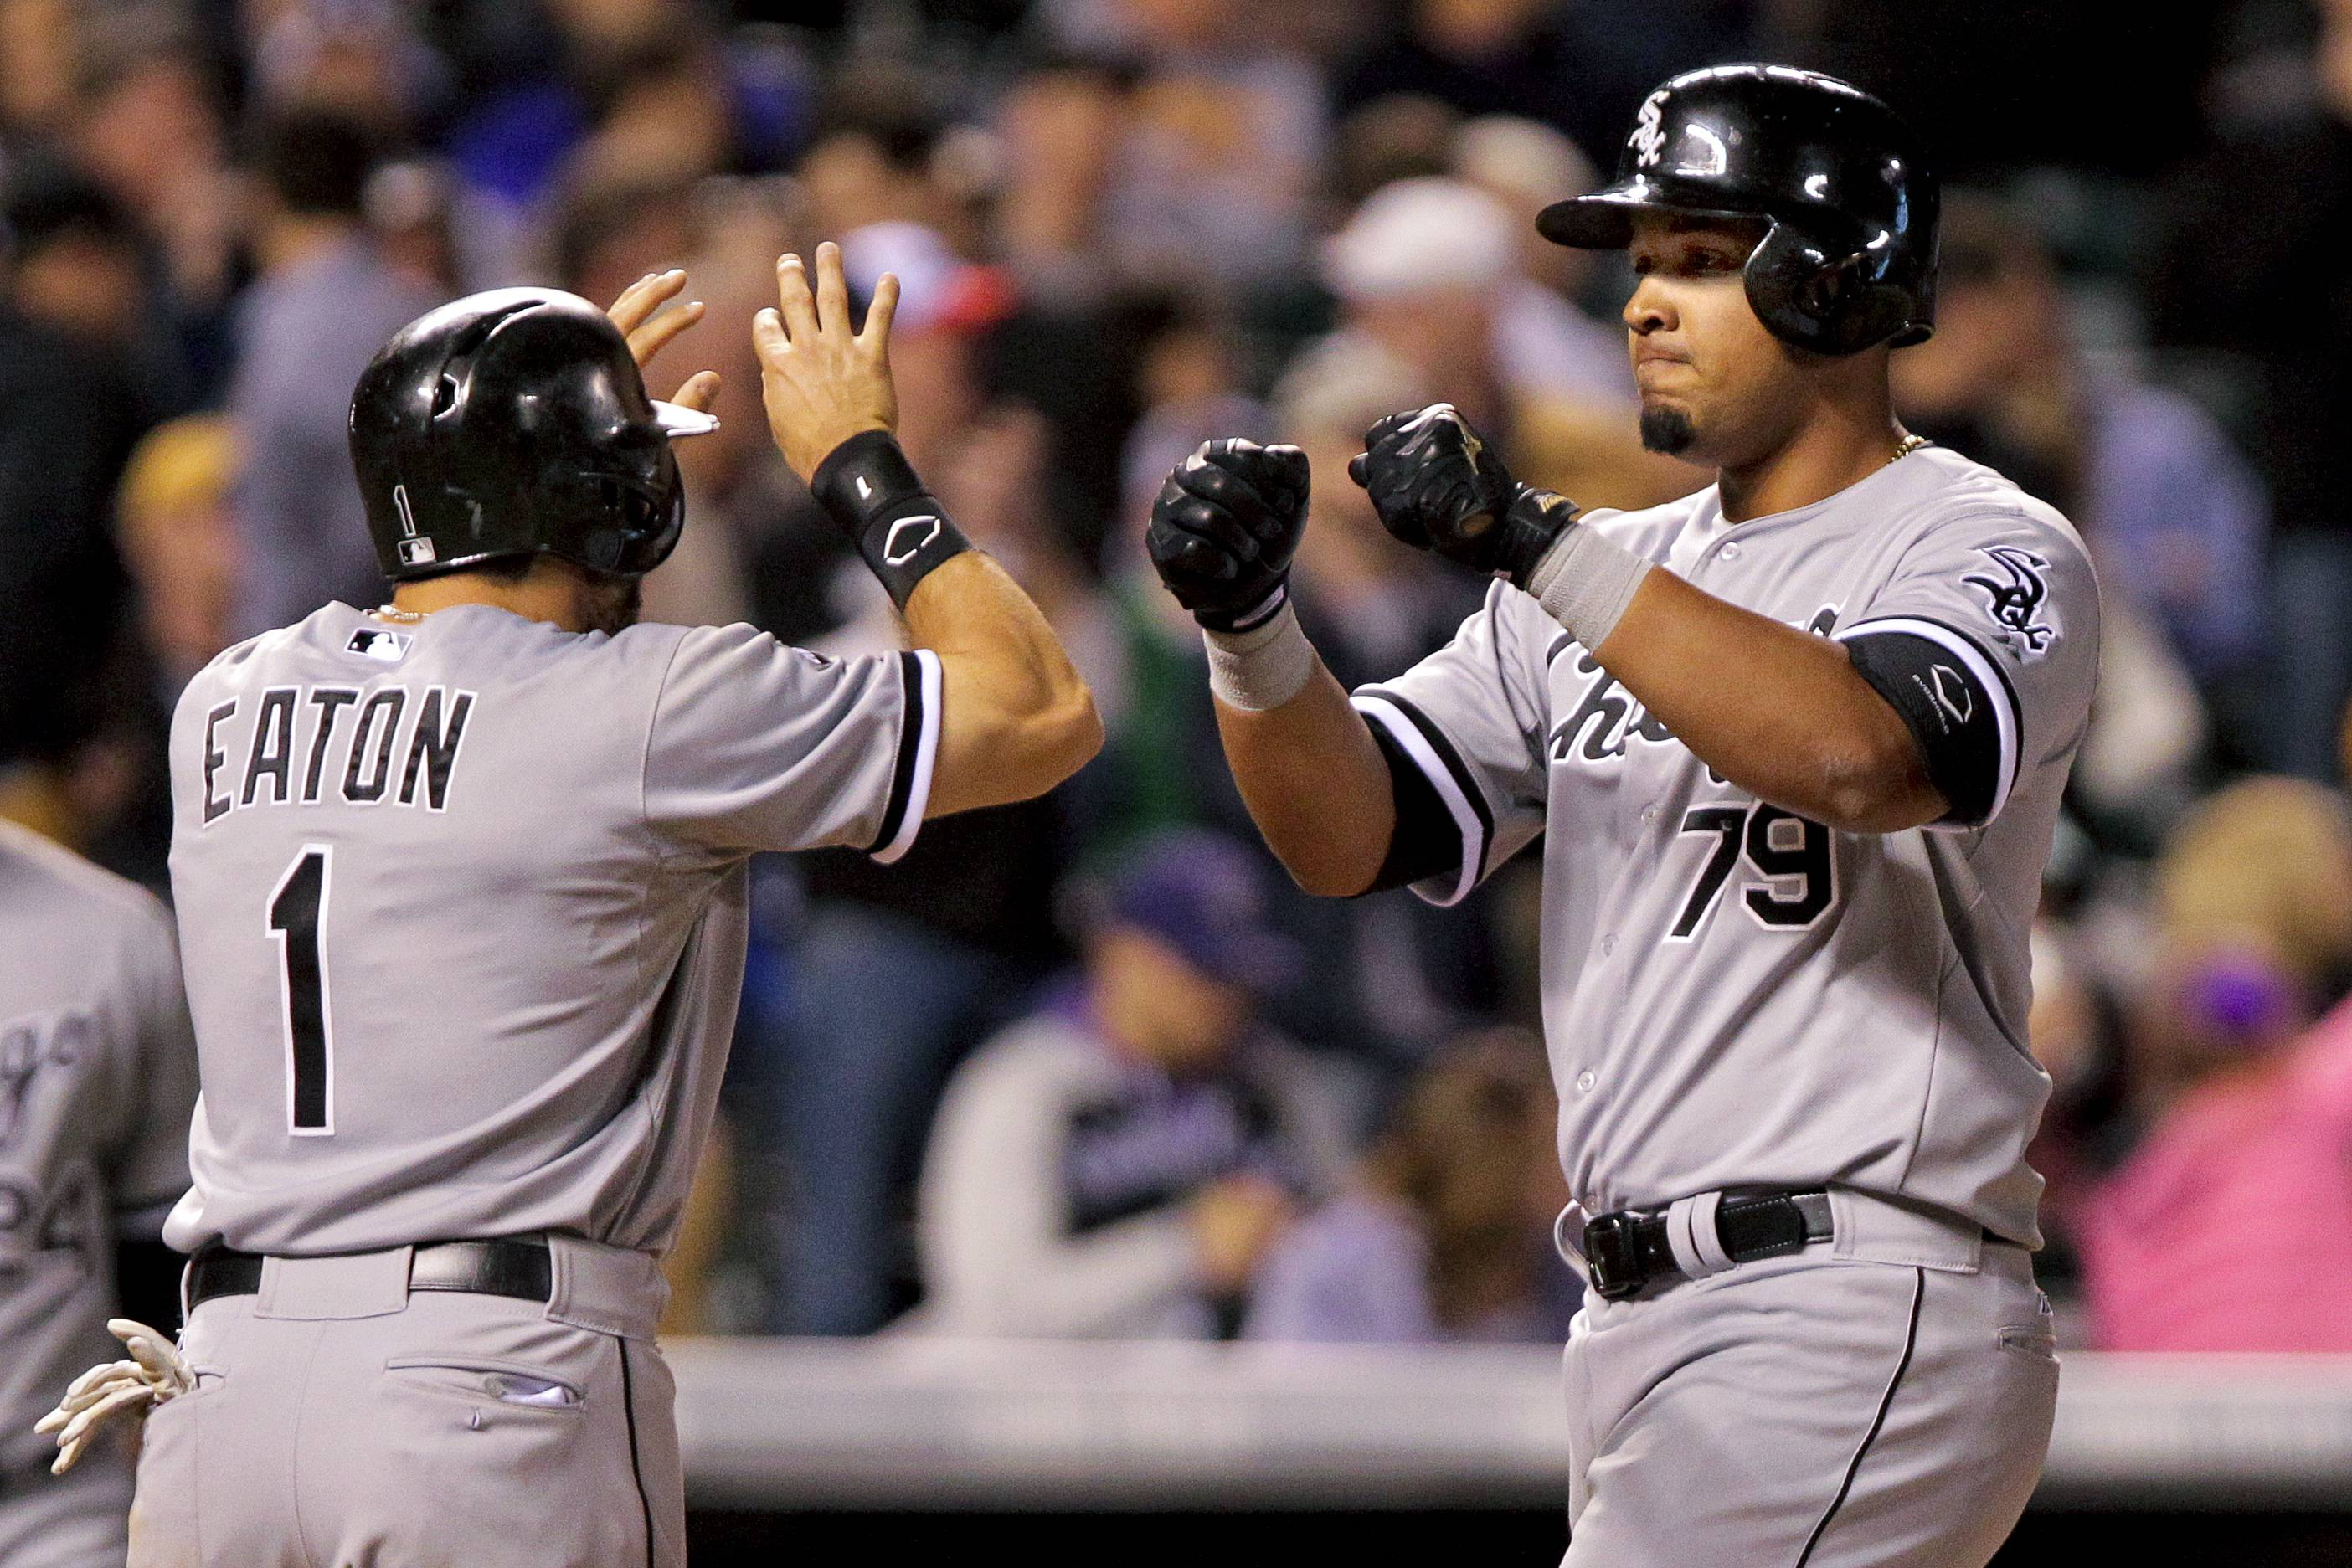 White Sox hit 6 homers in 15-3 win over Rockies